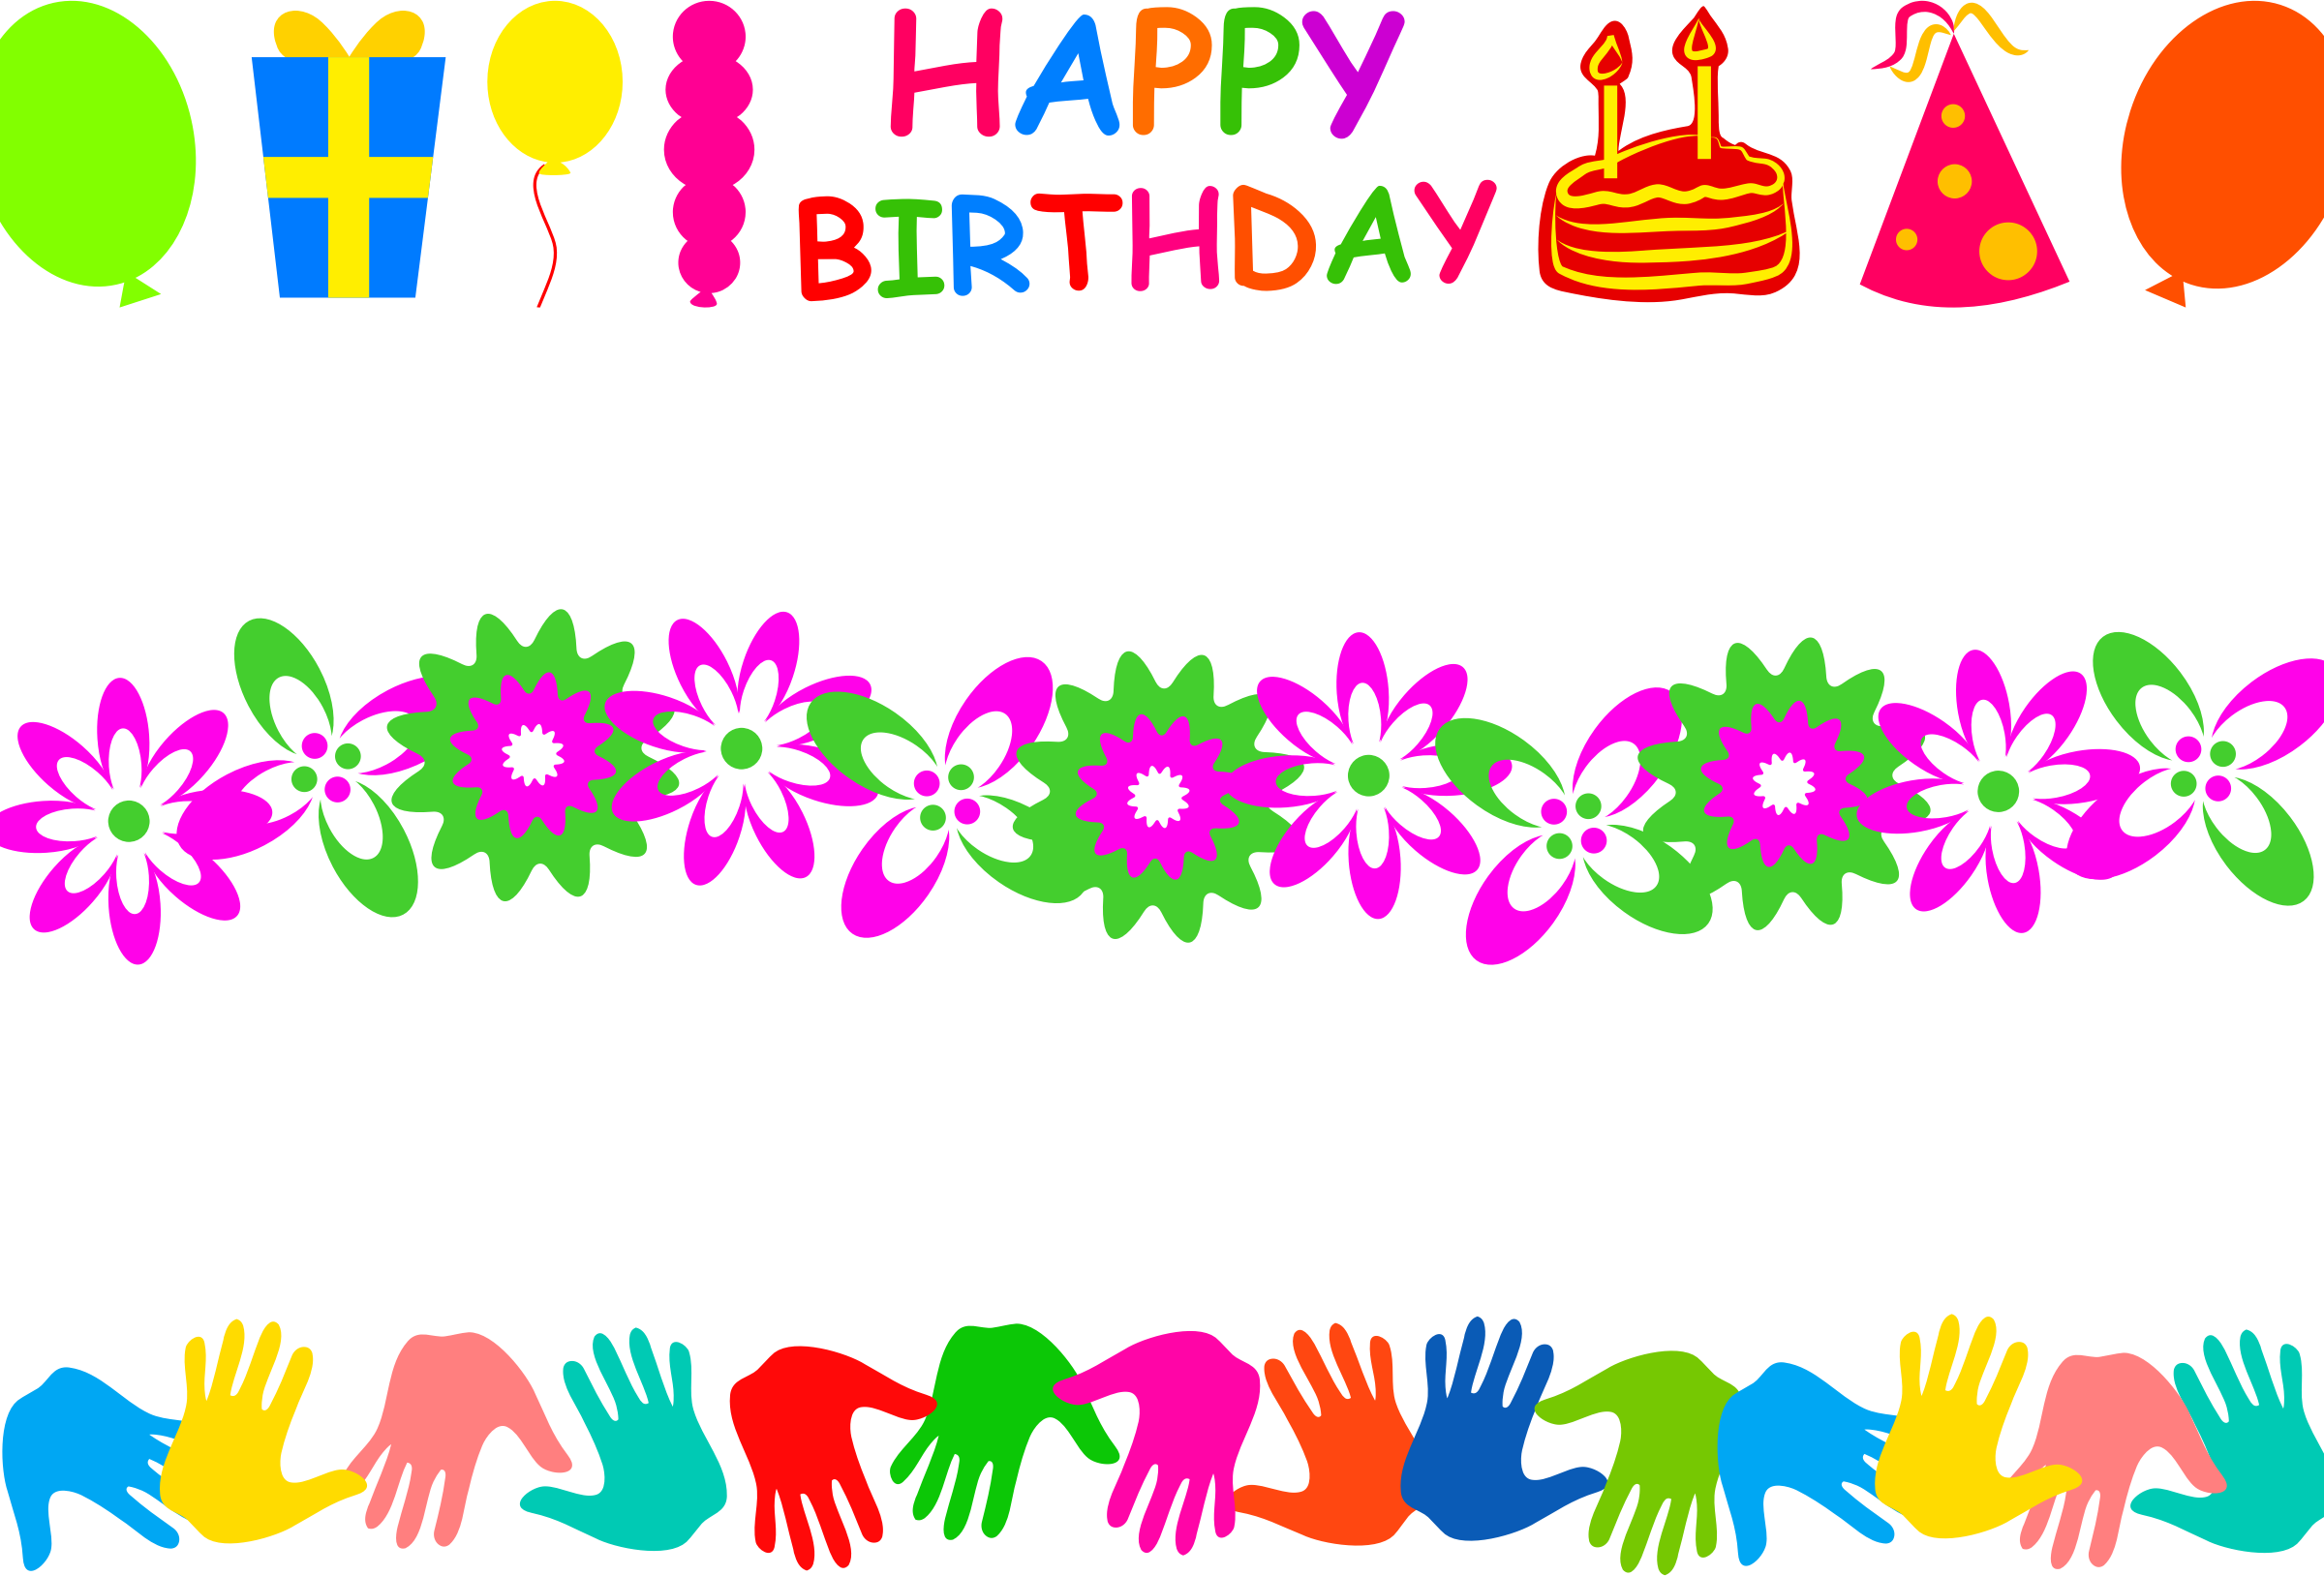 Blue Flower Frame Clipart furthermore Bee Kids Corner furthermore Fall Wallpaper Backgrounds With Pumpkins in addition Balloon Banner Clip Art likewise Animated Cheerleaders. on kids happy birthday transparent frame